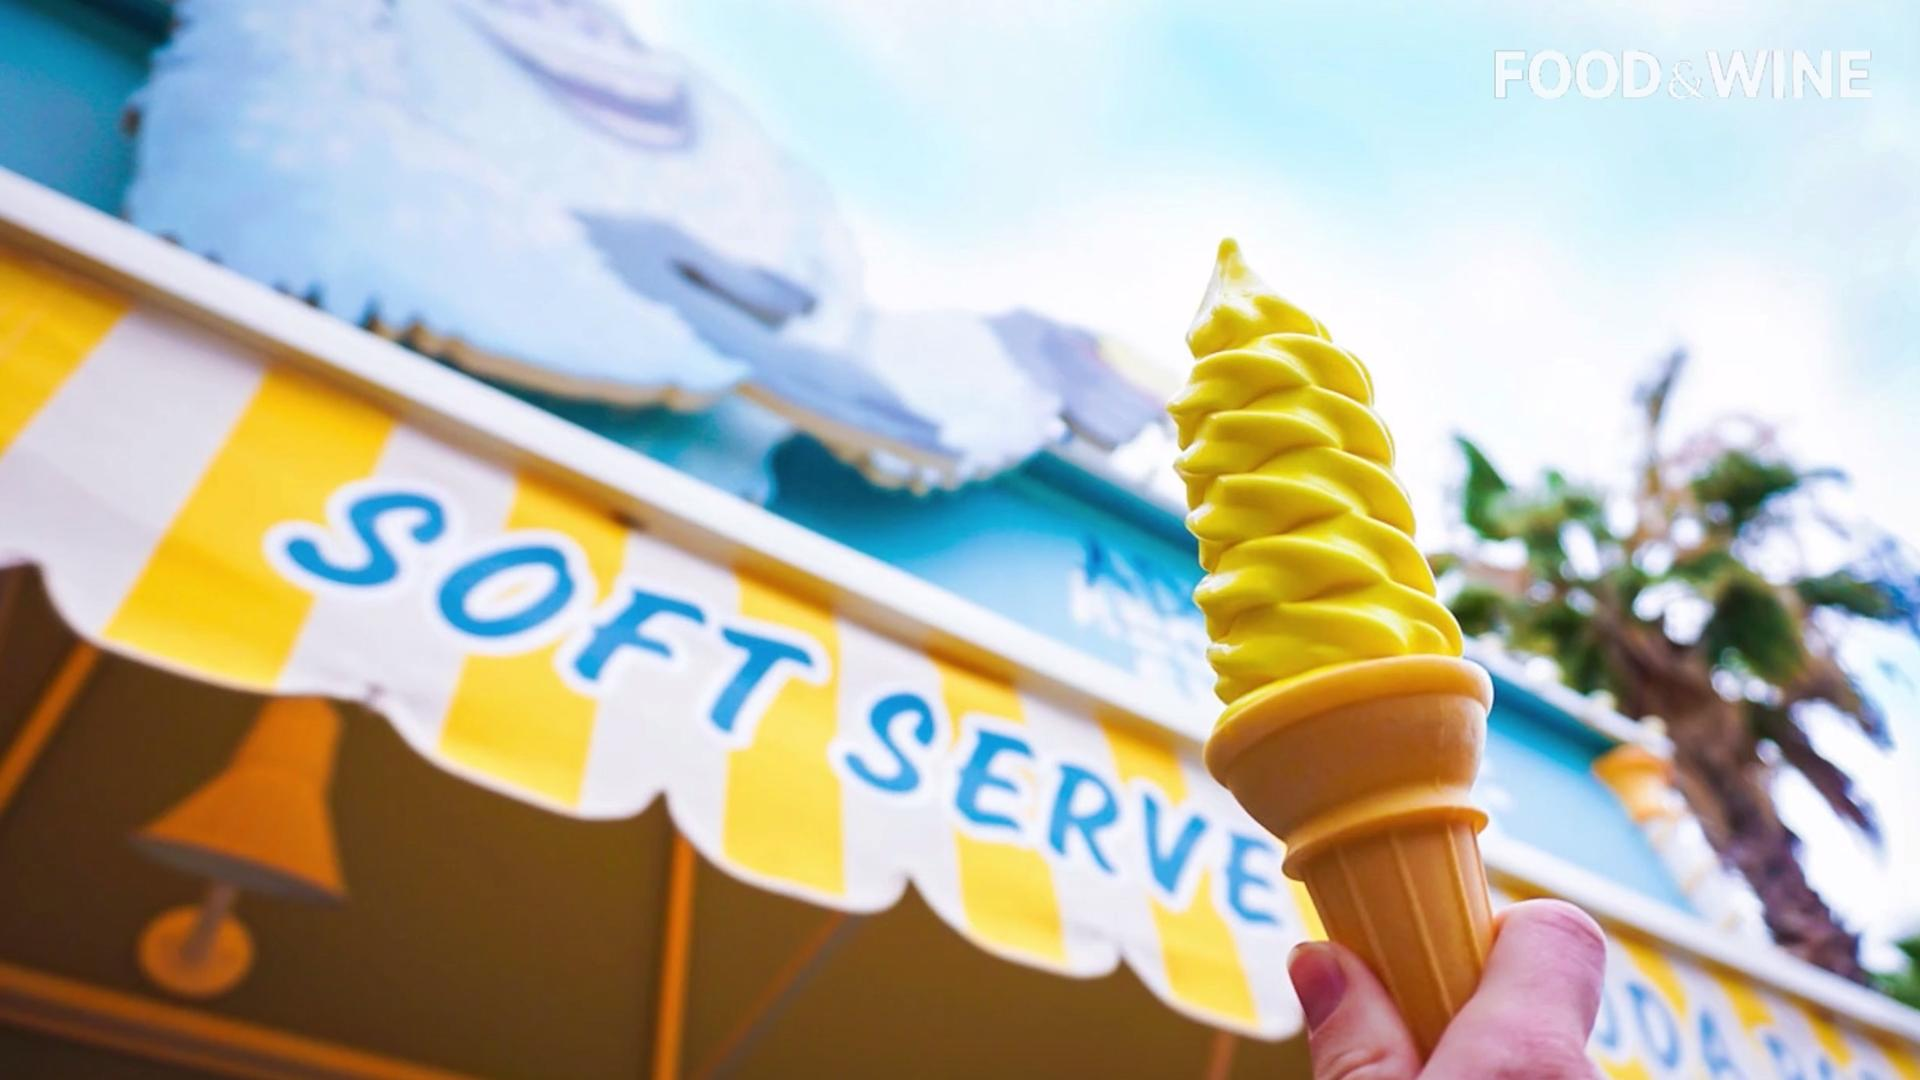 Disney's New Soft Serve Flavor Could Be the Next Dole Whip